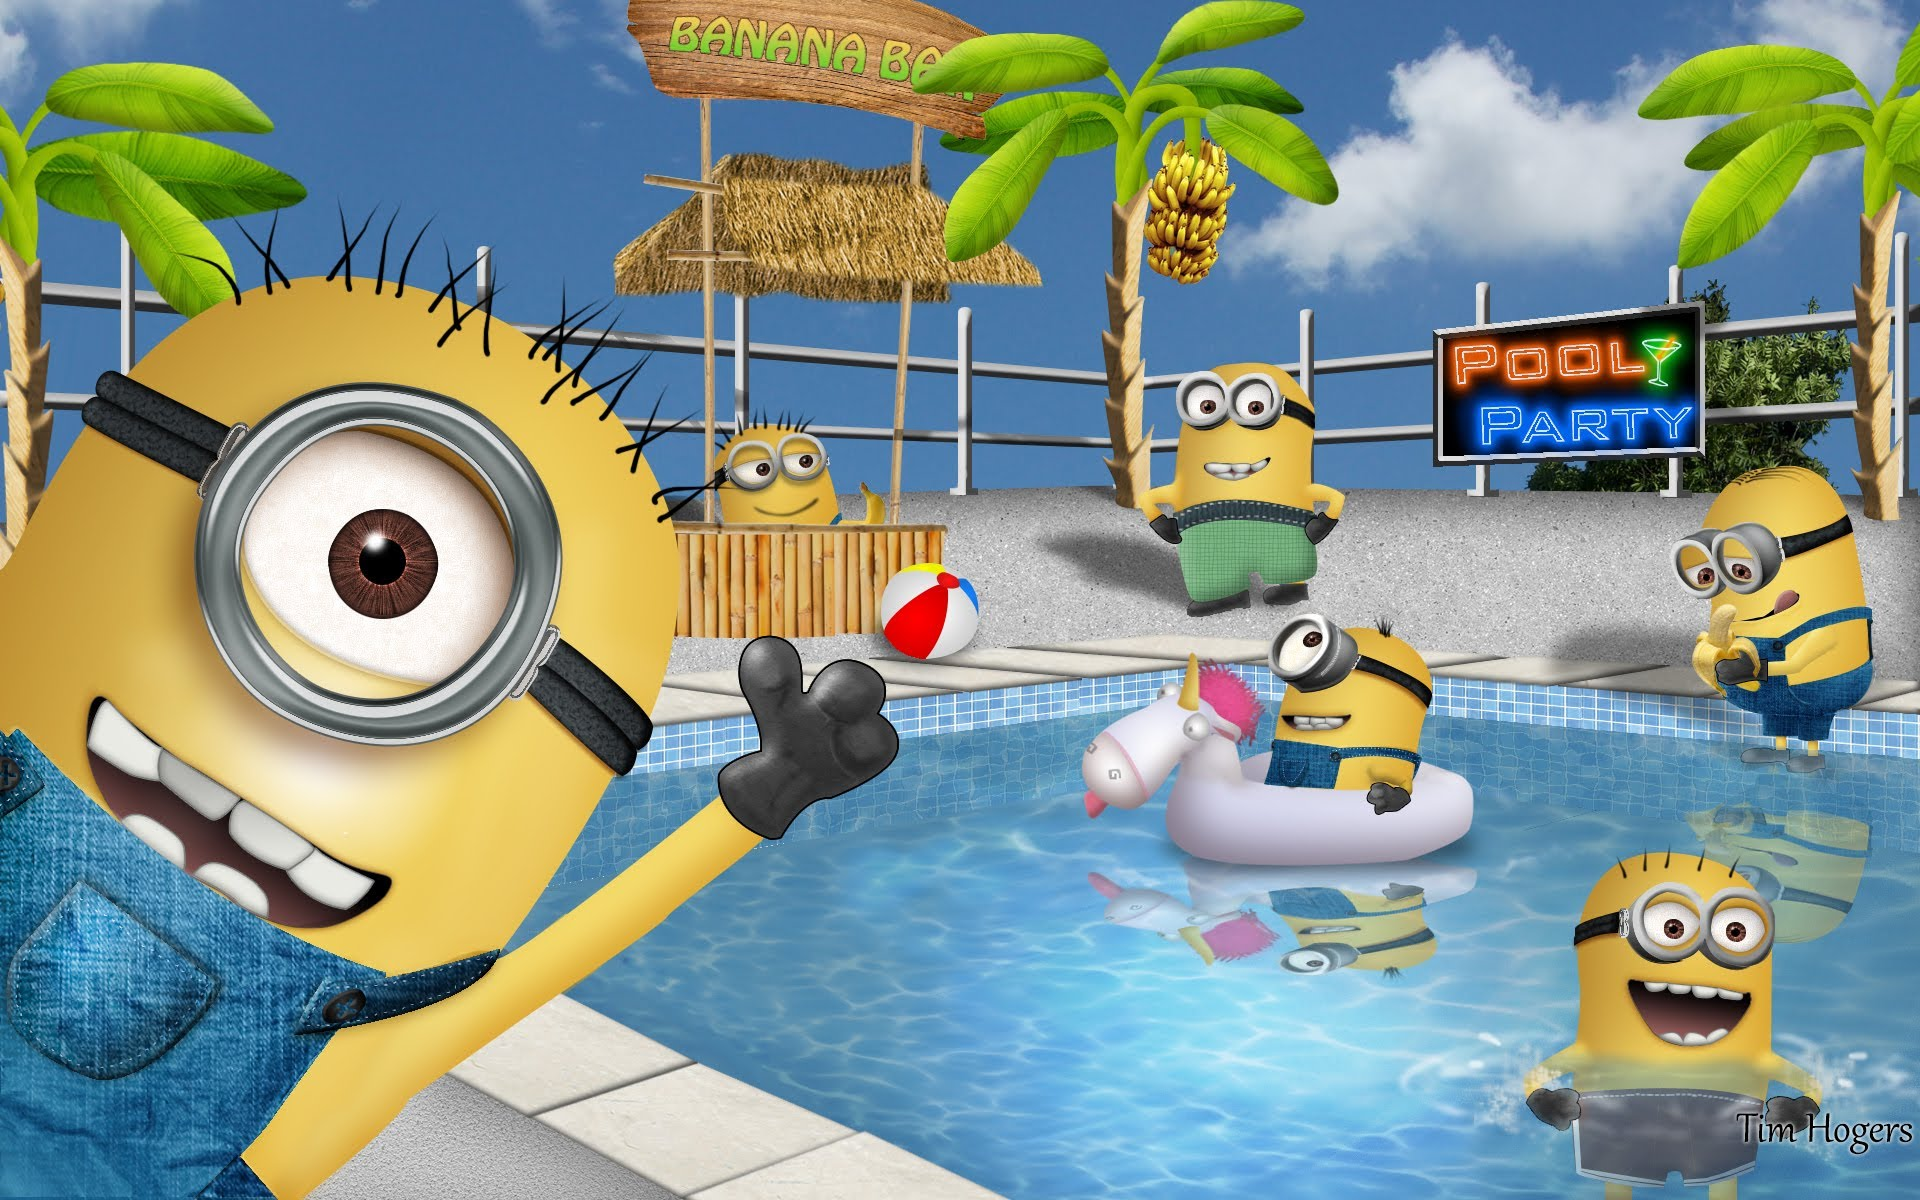 Minions Party Backgrounds For Minions Party Backgrounds Www8backgroundscom